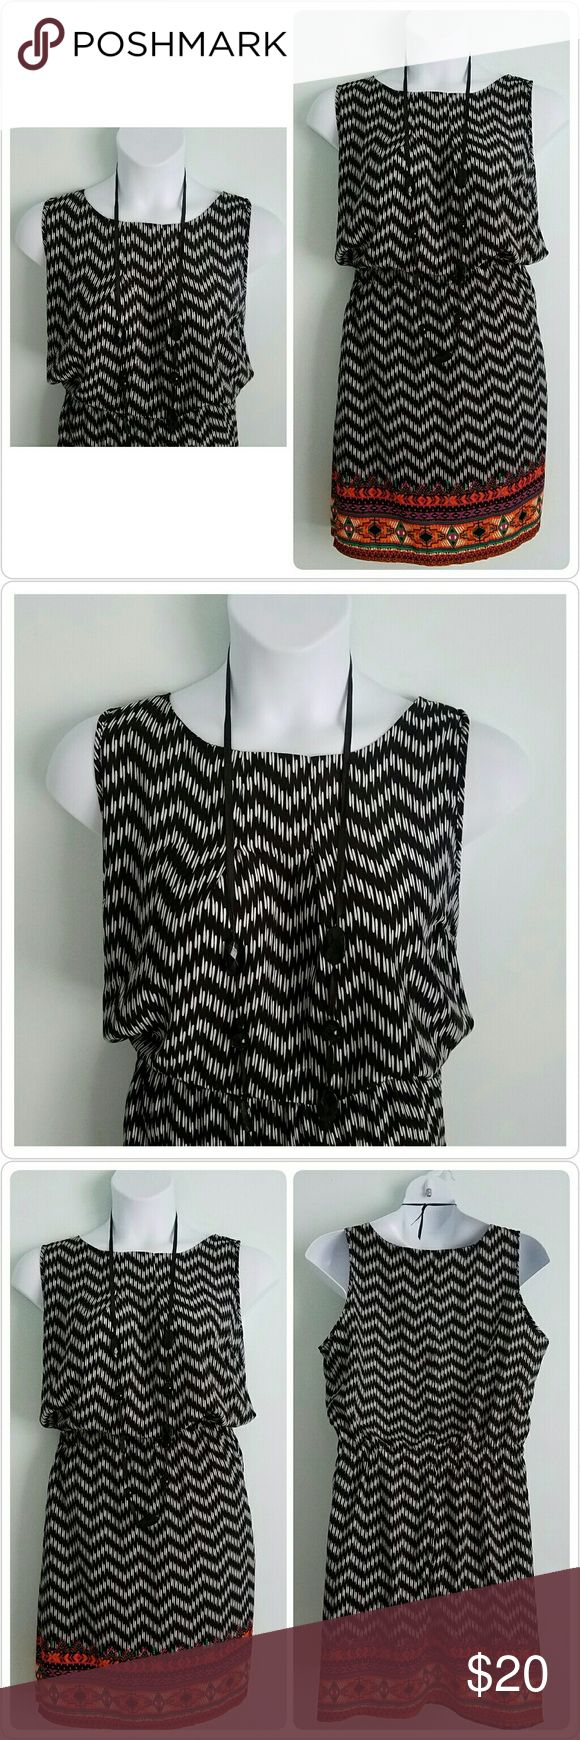 Feathers Plus Black & White Zig Zag Aztec Dress Brand: Feathers  Size: 2x  Condition: Excellent preloved, no issues Color: Black, White, Orange, Purple Lined: No Sleeve Style: Sleeveless  Occasion: Career or Casual Dress Length: Knee  Material: 100% Polyester  Machine Washable: Yes Zipper: No  Bust: 23 Waist: 18 Stretch  Hips: 26 Length: 40 Special features: Pockets with Zippers  Please let me know if you have any questions. Thank you for looking! Xoxoxoxo Feathers Dresses